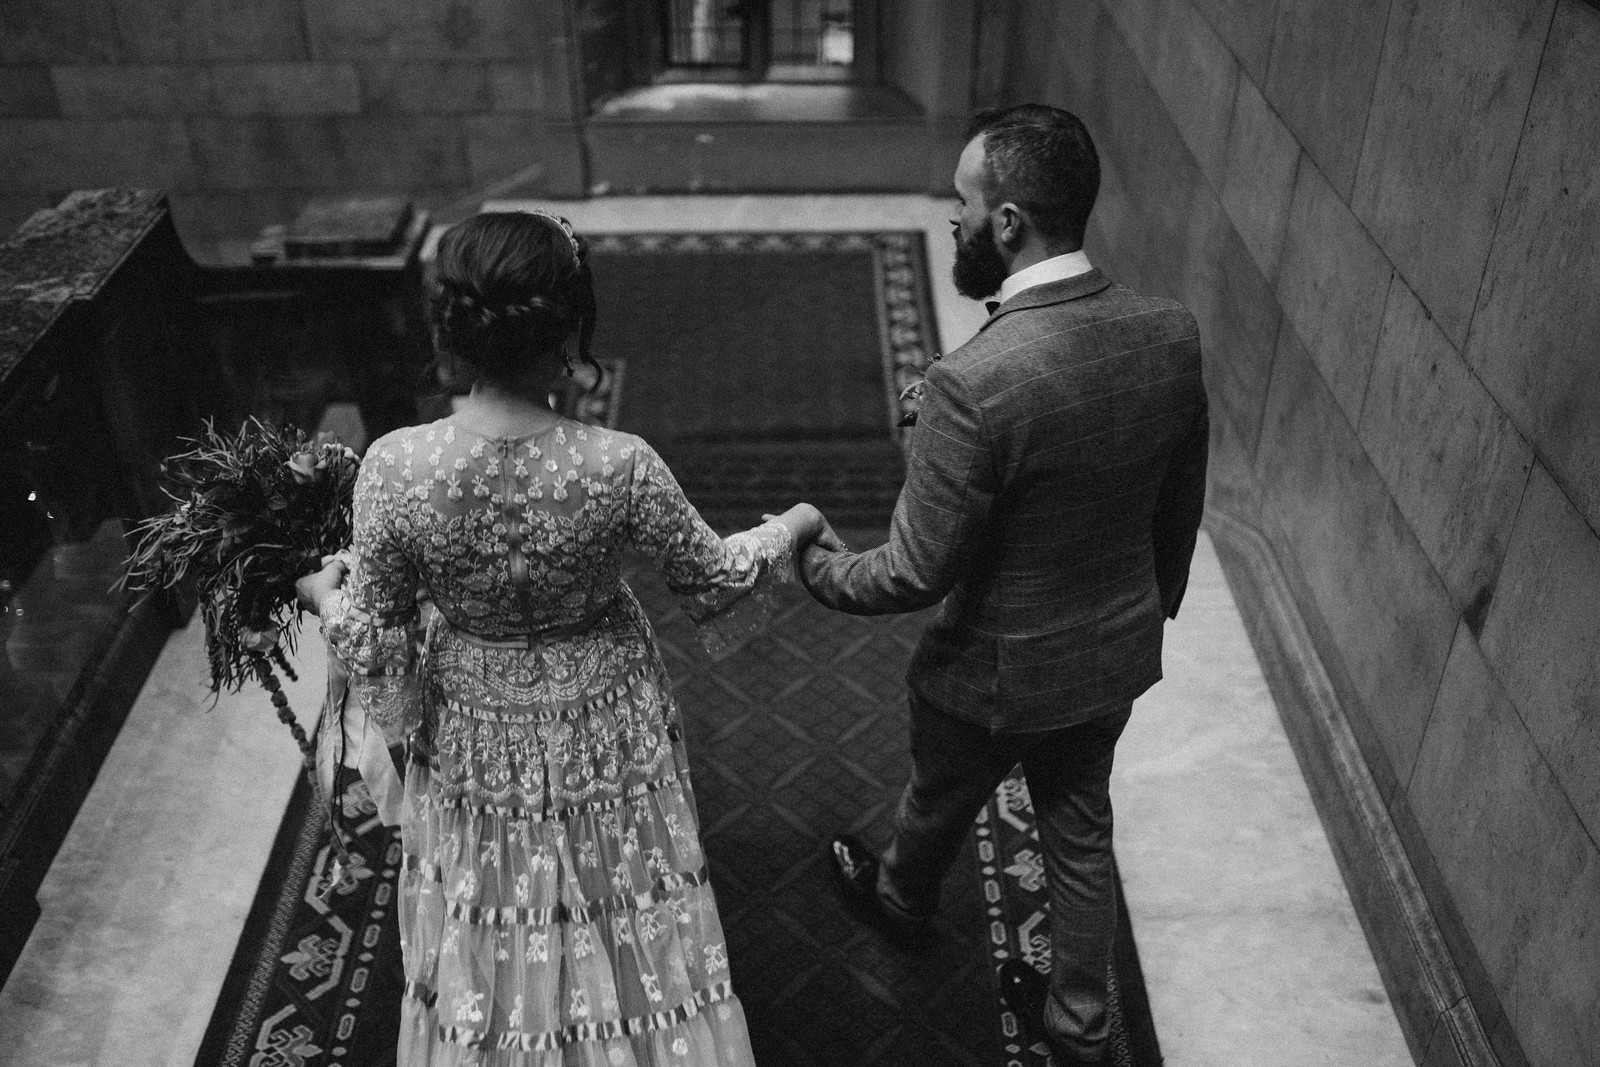 Bride and groom walk down the grand stairs, holding hands